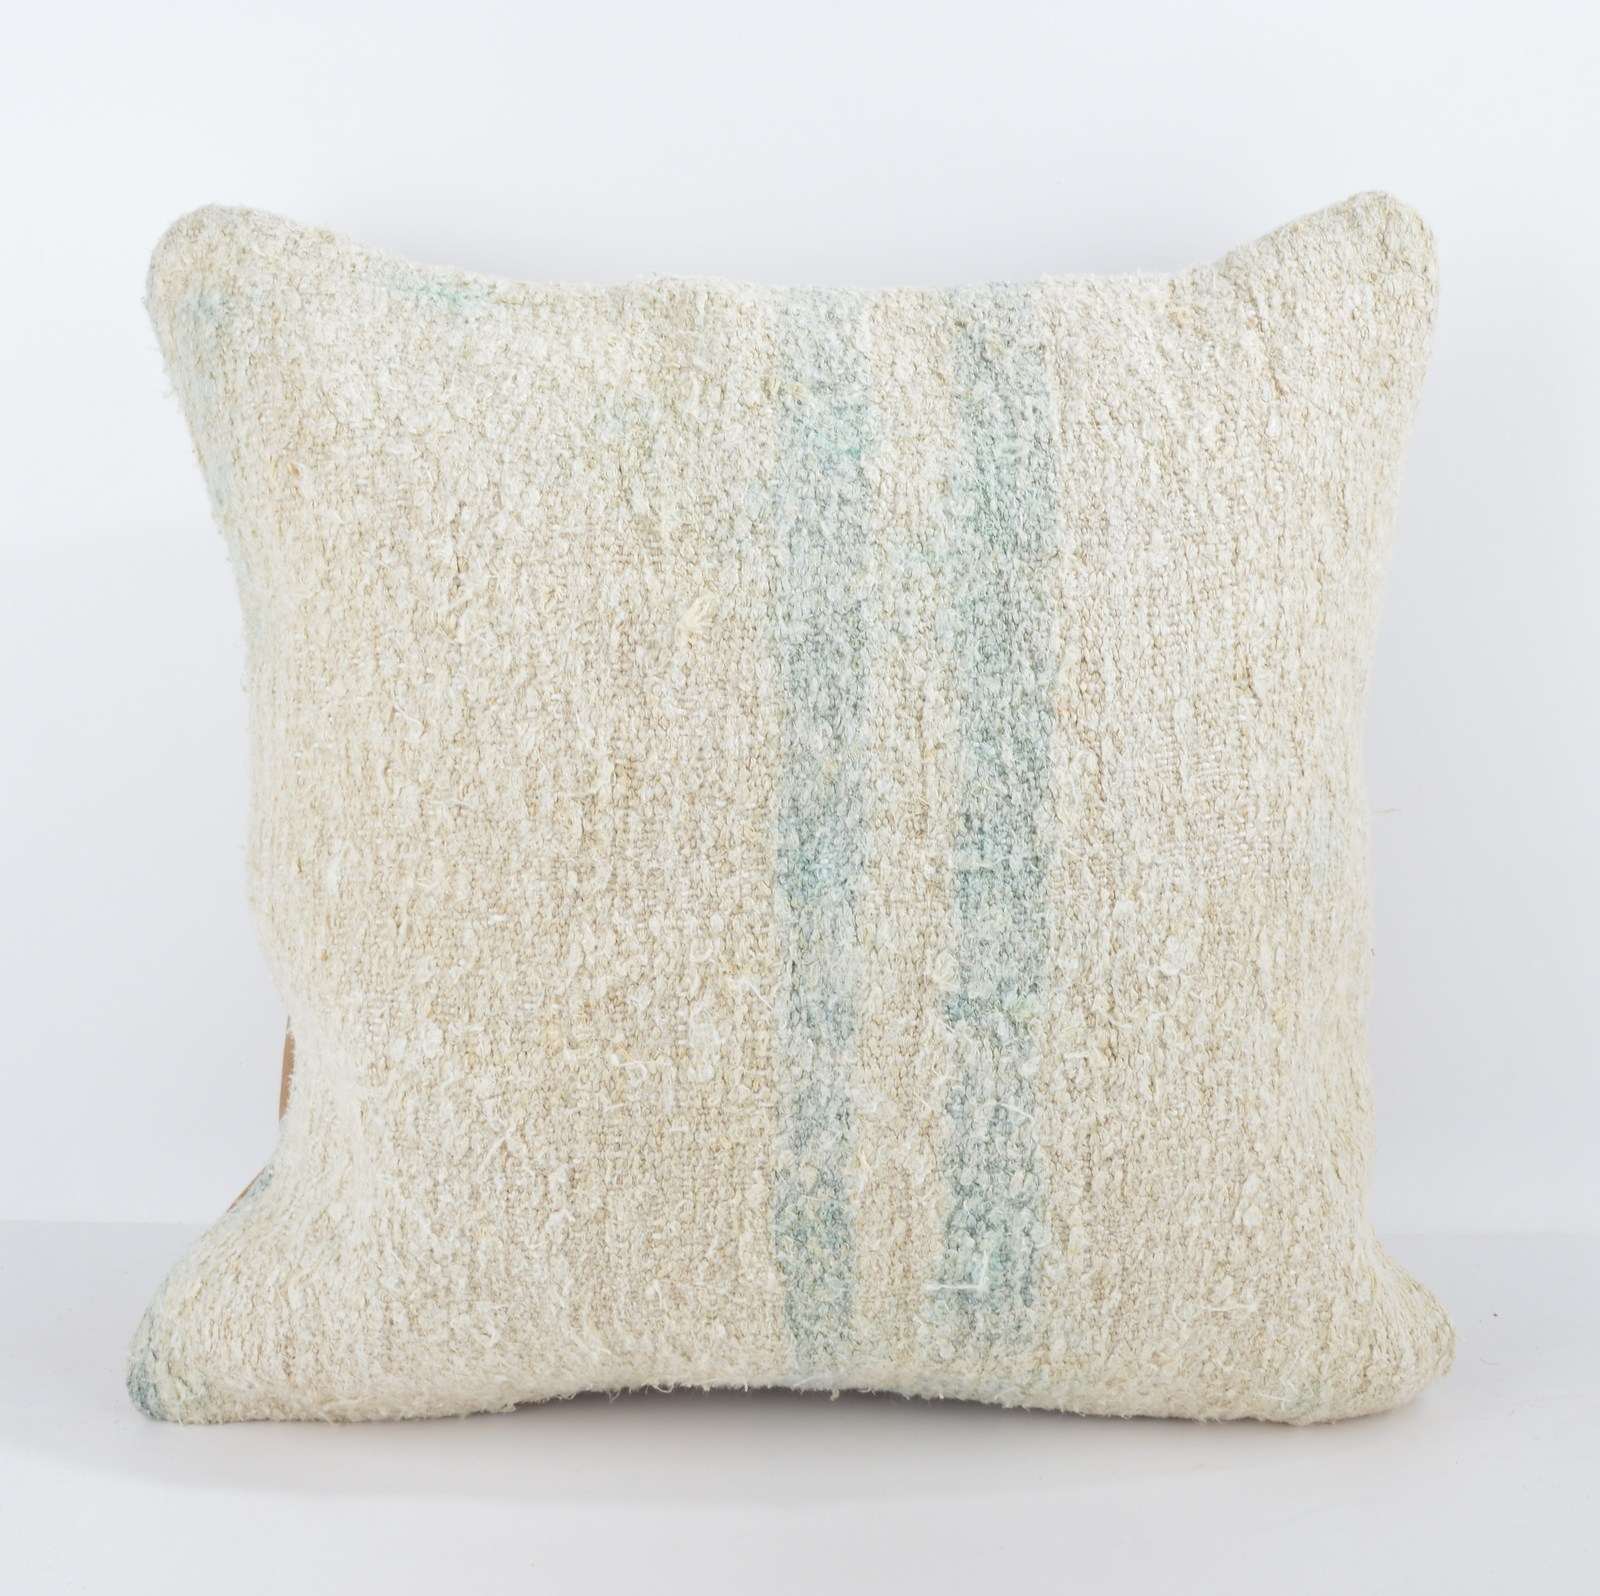 18x18 white pillow white kilim pillow white pillow case home wihite pillow cover